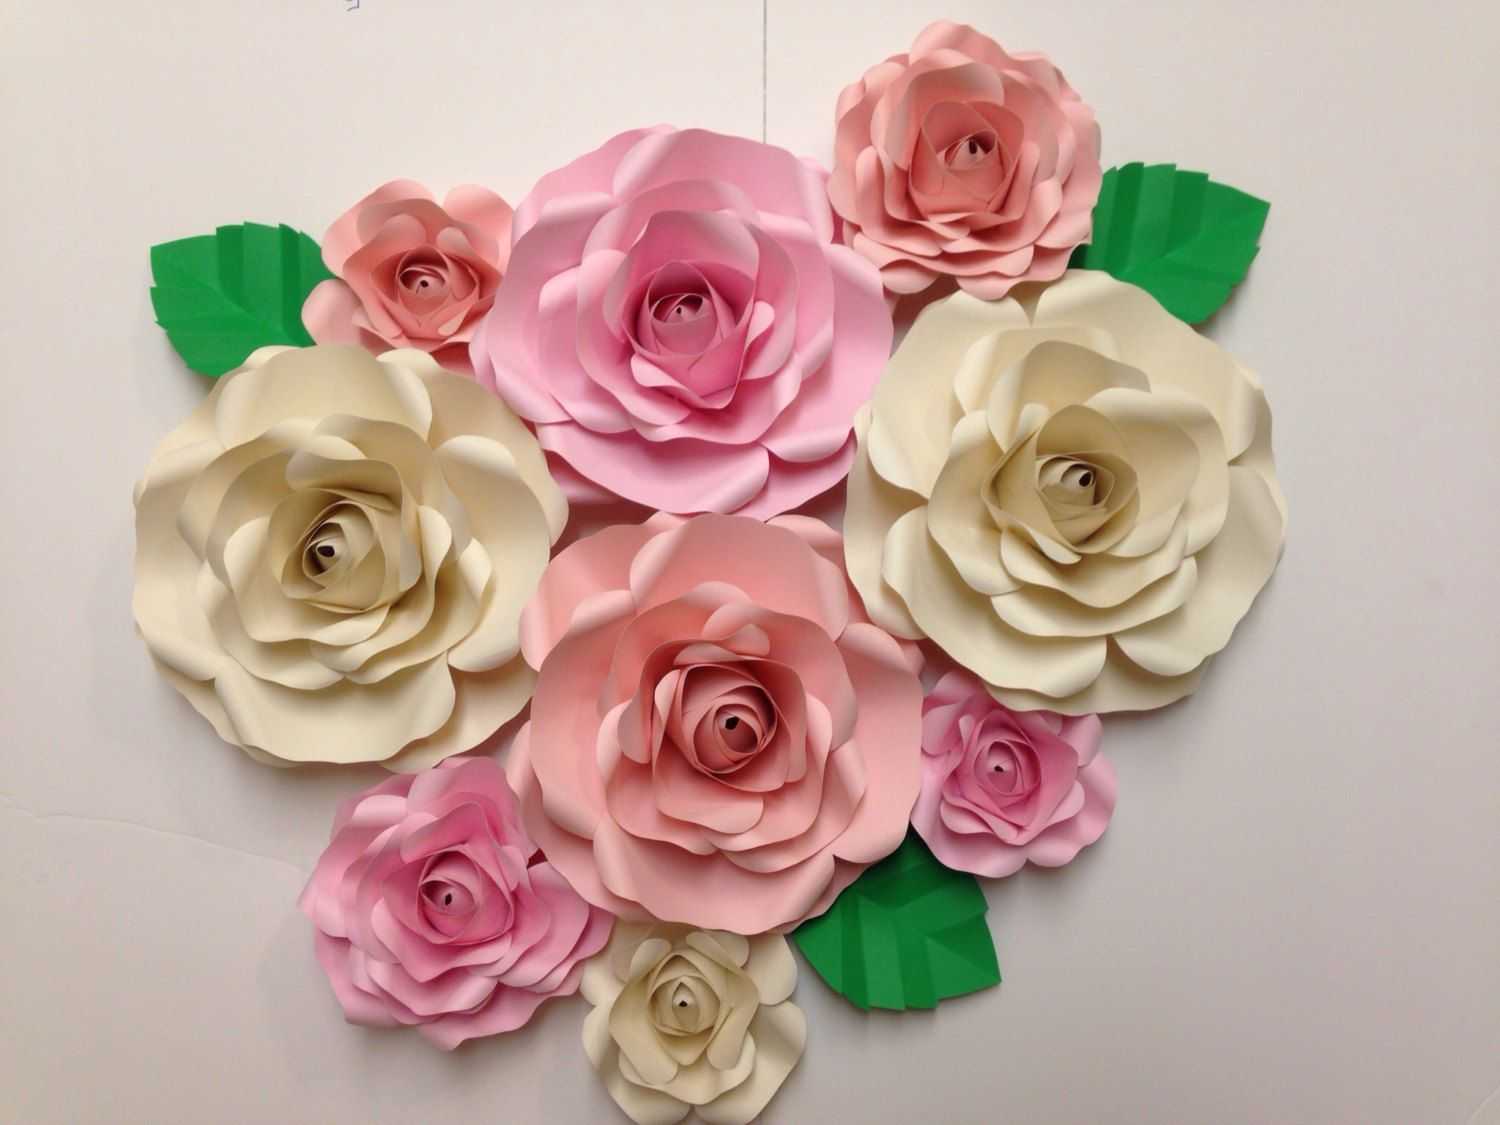 9 Pc Paper Flower Backdrop Roses Shabby Chic Weddings Bridal Shower By Paperpetalsbyjasmine On Etsy Paper Flowers Paper Flower Backdrop Flower Backdrop